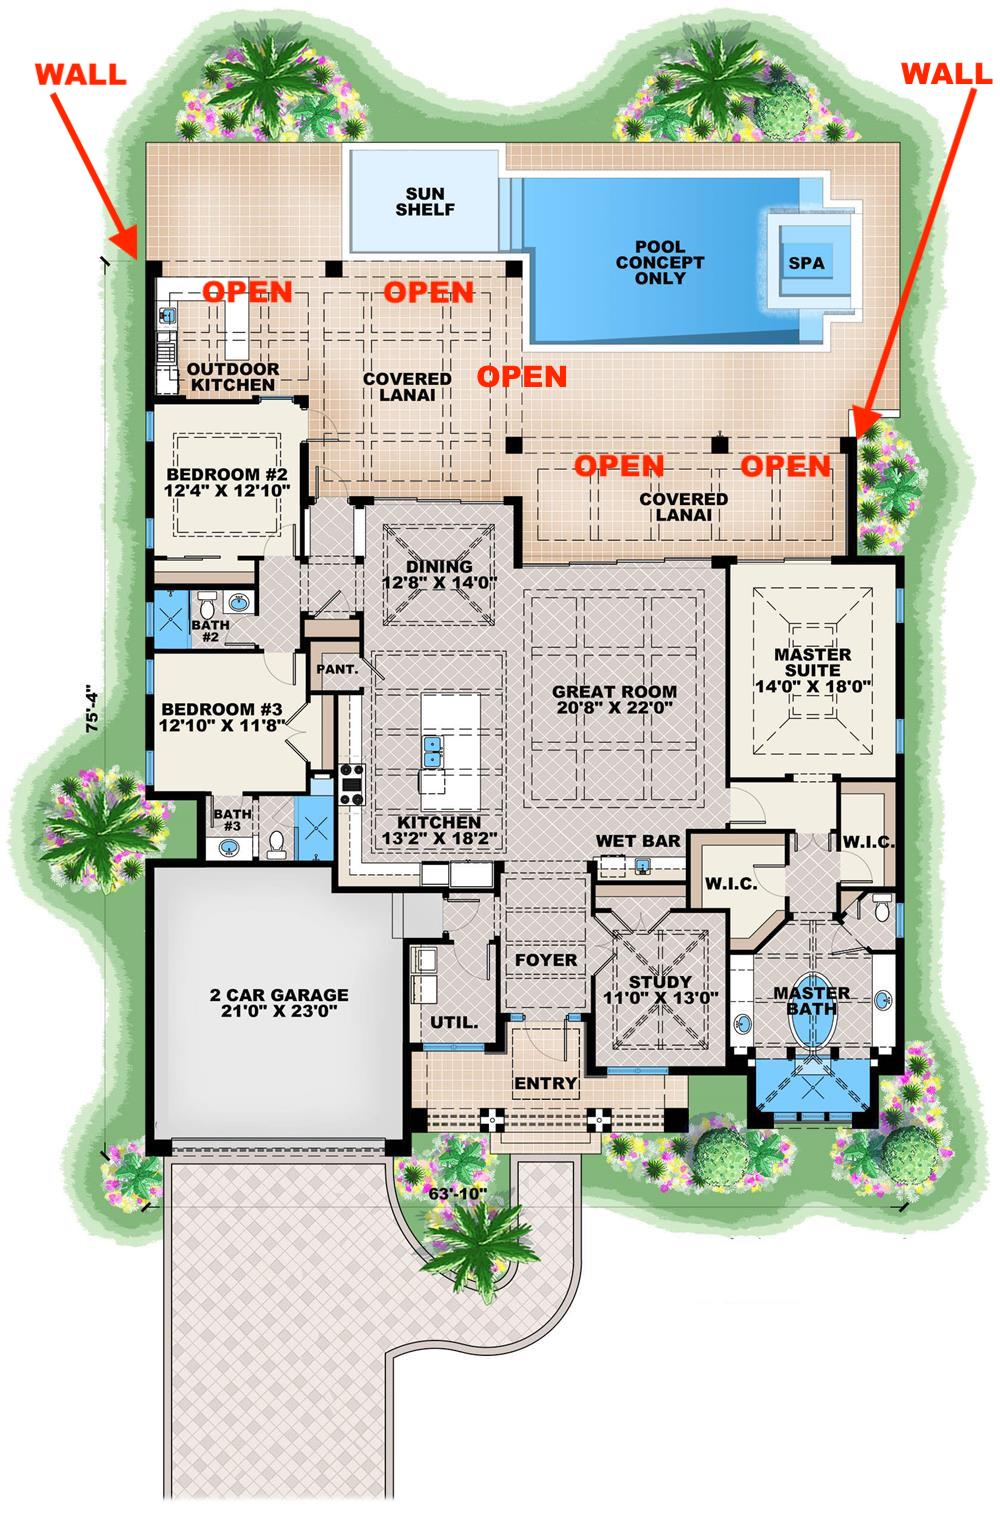 Floor plan of Contemporary California style home showing configuration of covered lanai